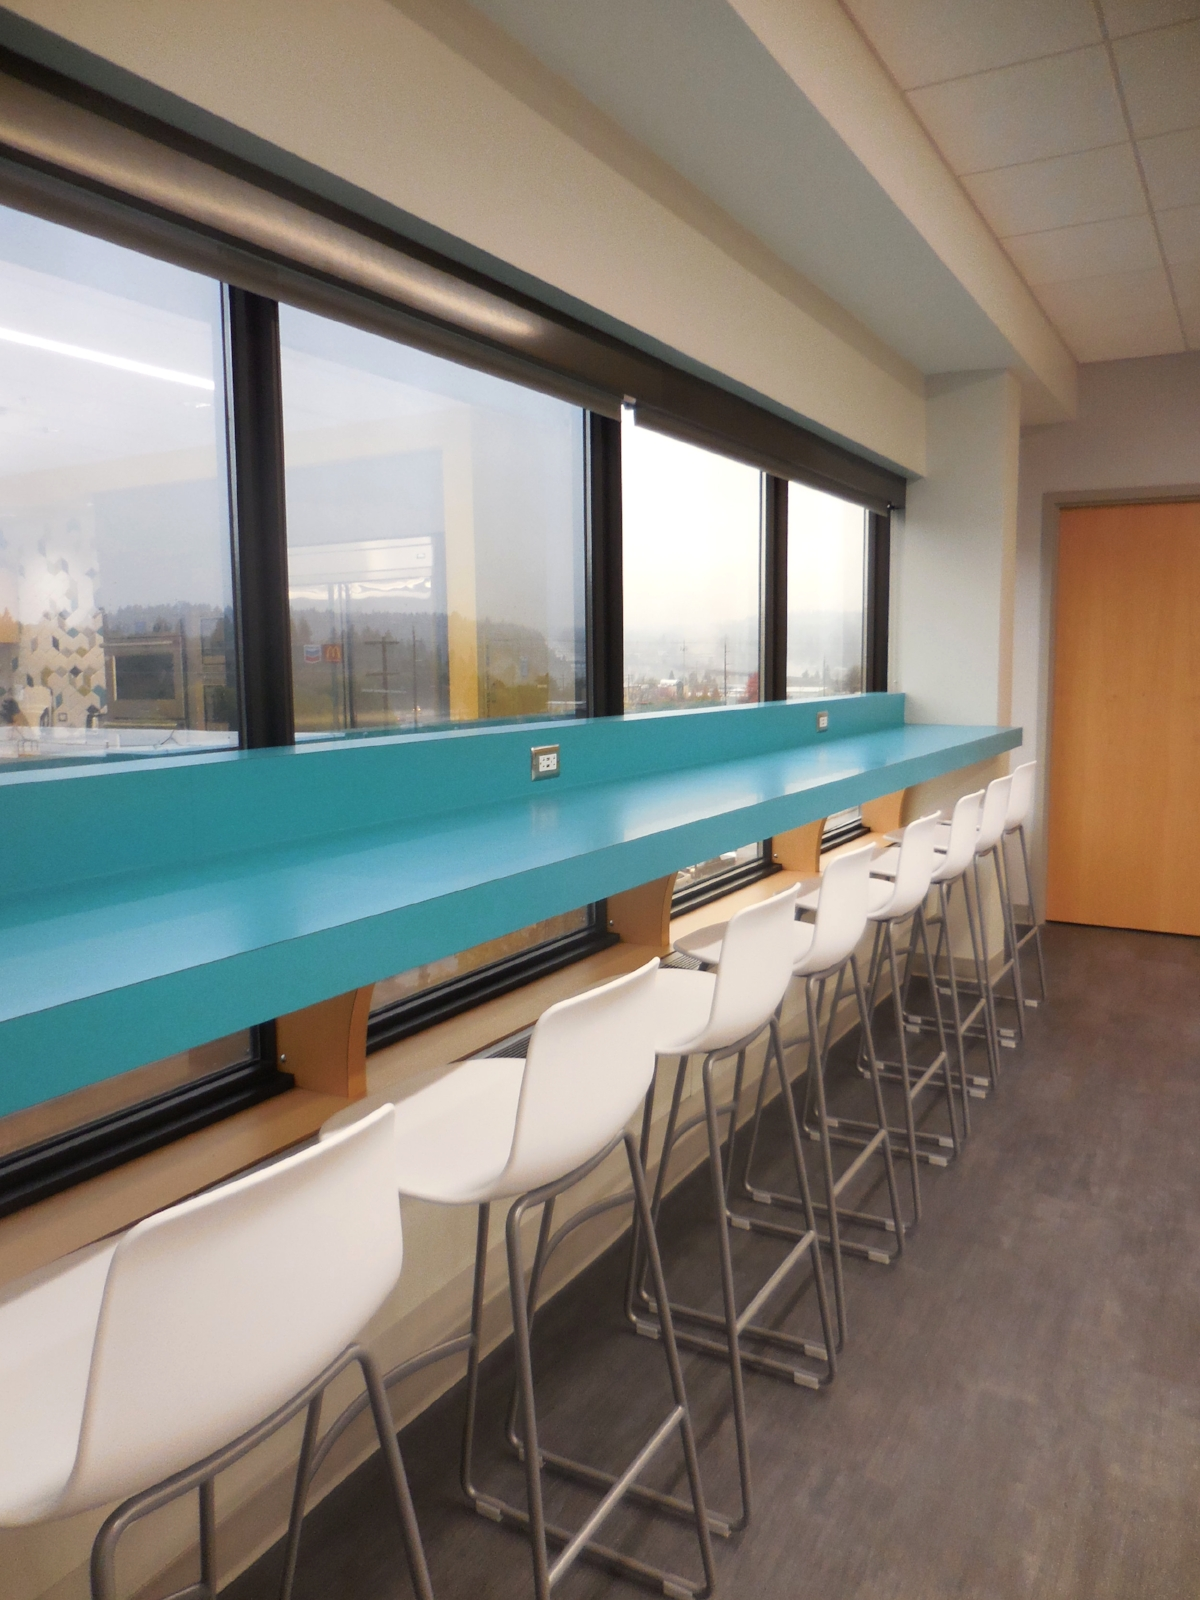 Break room / Kitchen / Lounge seating / Bar height seating / Window counter